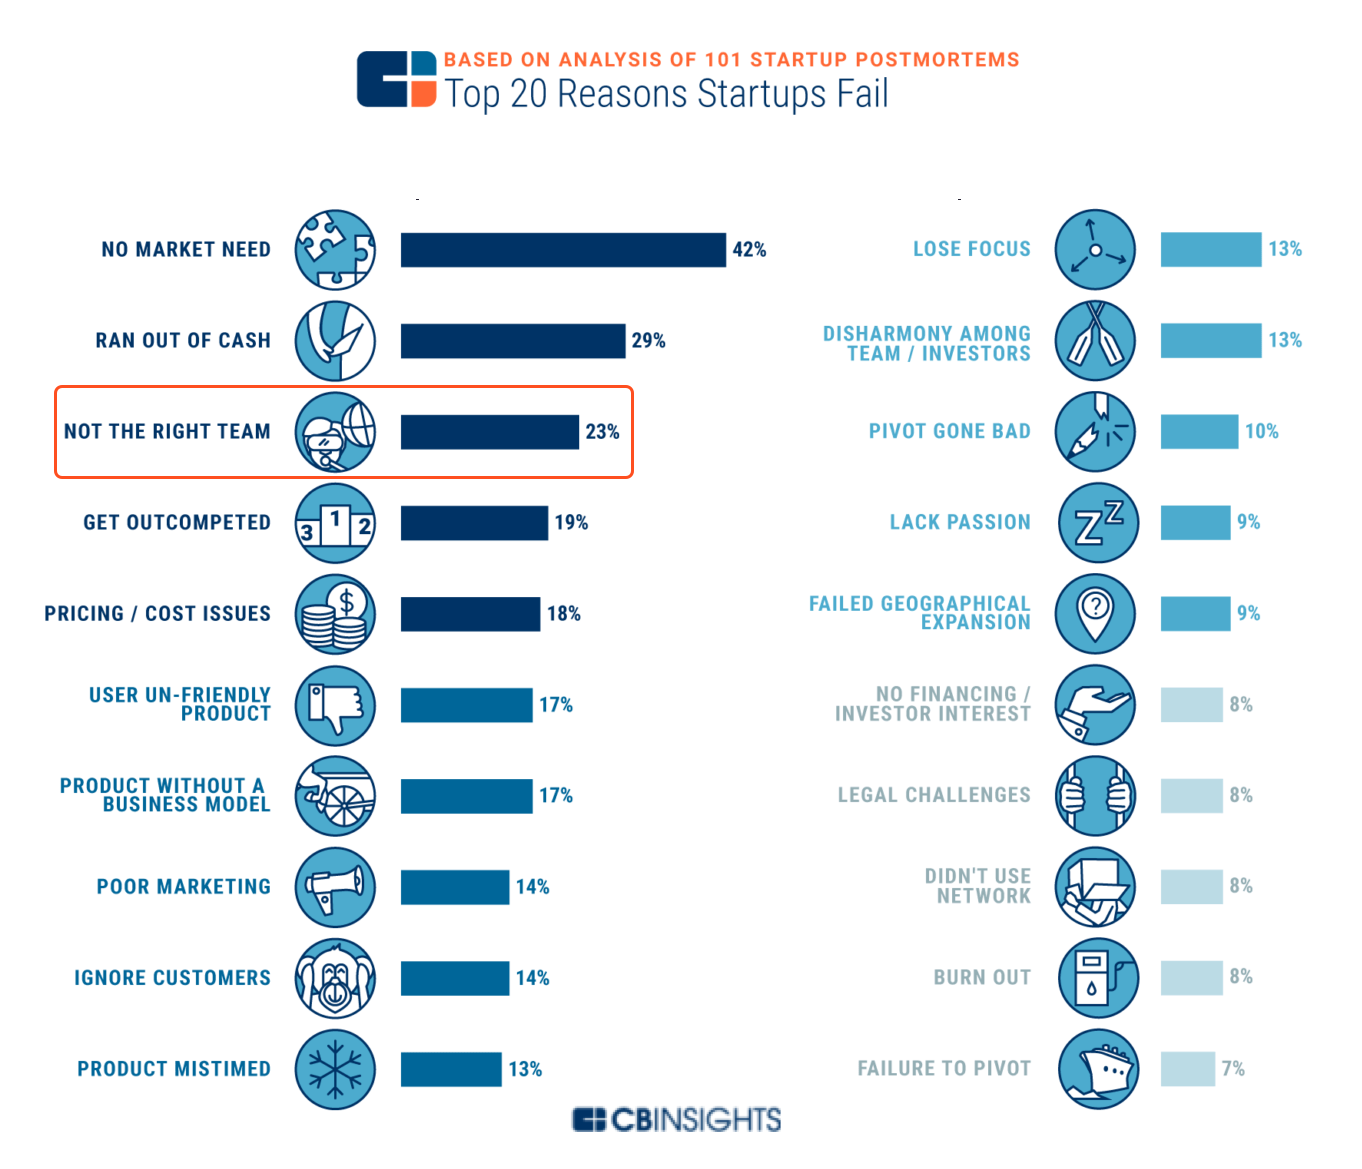 Top Reasons Startups Fail according to CB Insight Report